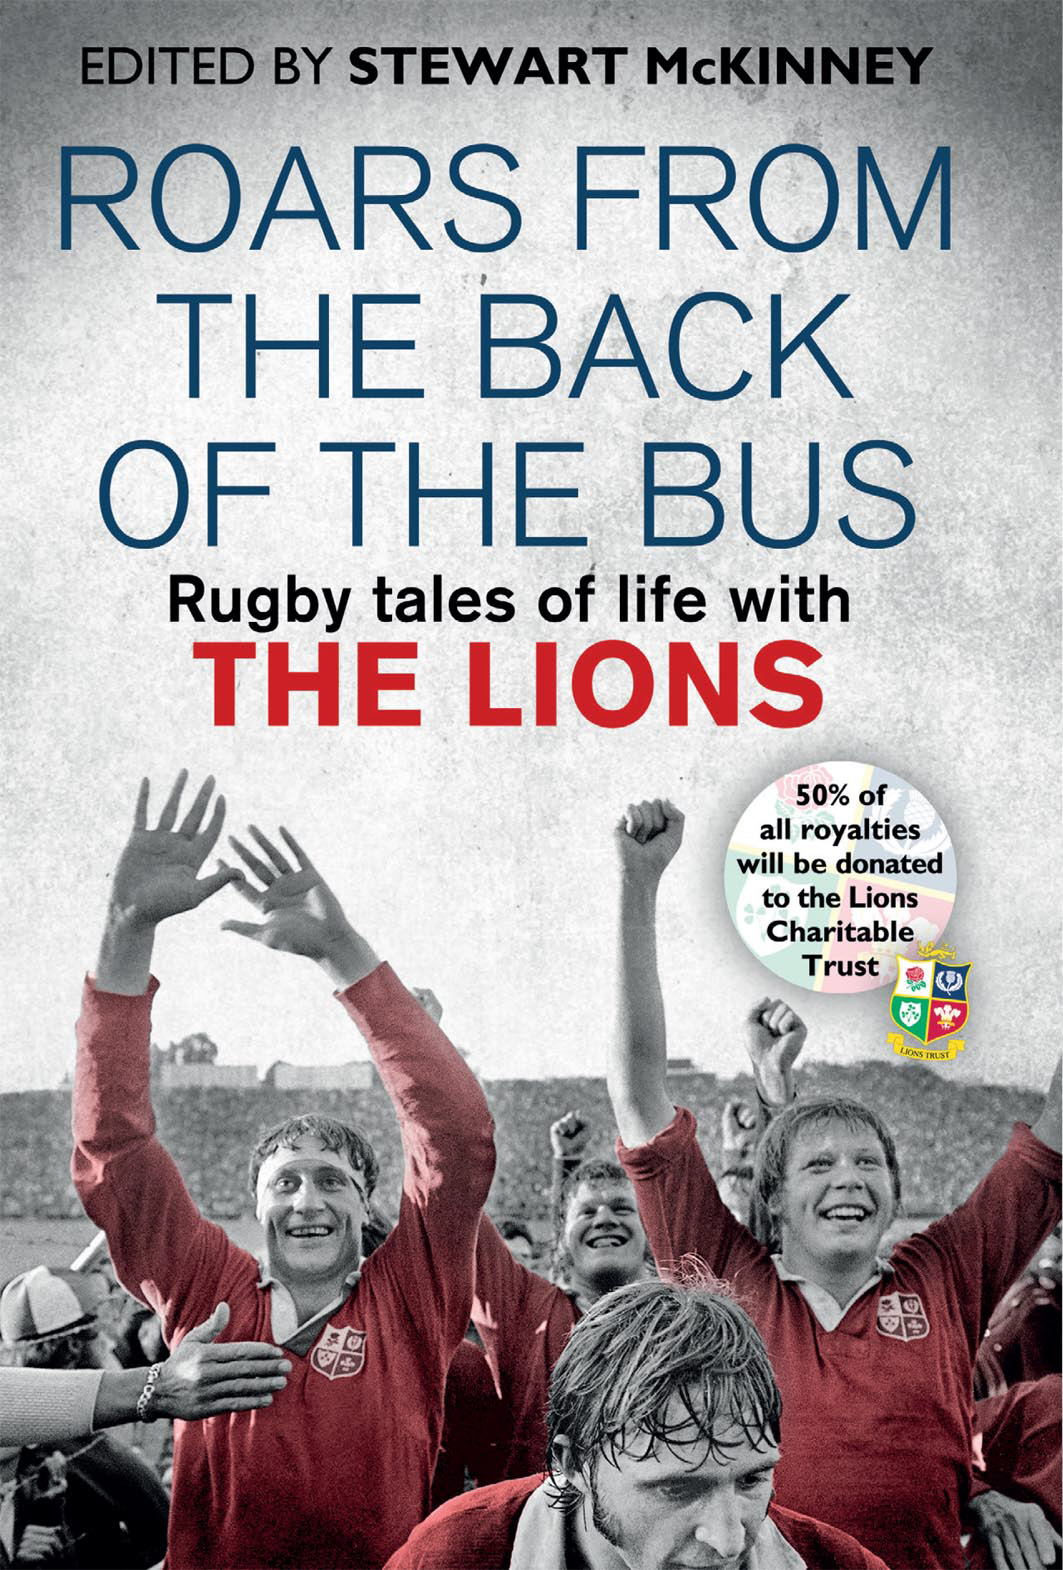 Roars from the Back of the Bus Rugby Tales of Life with the Lions